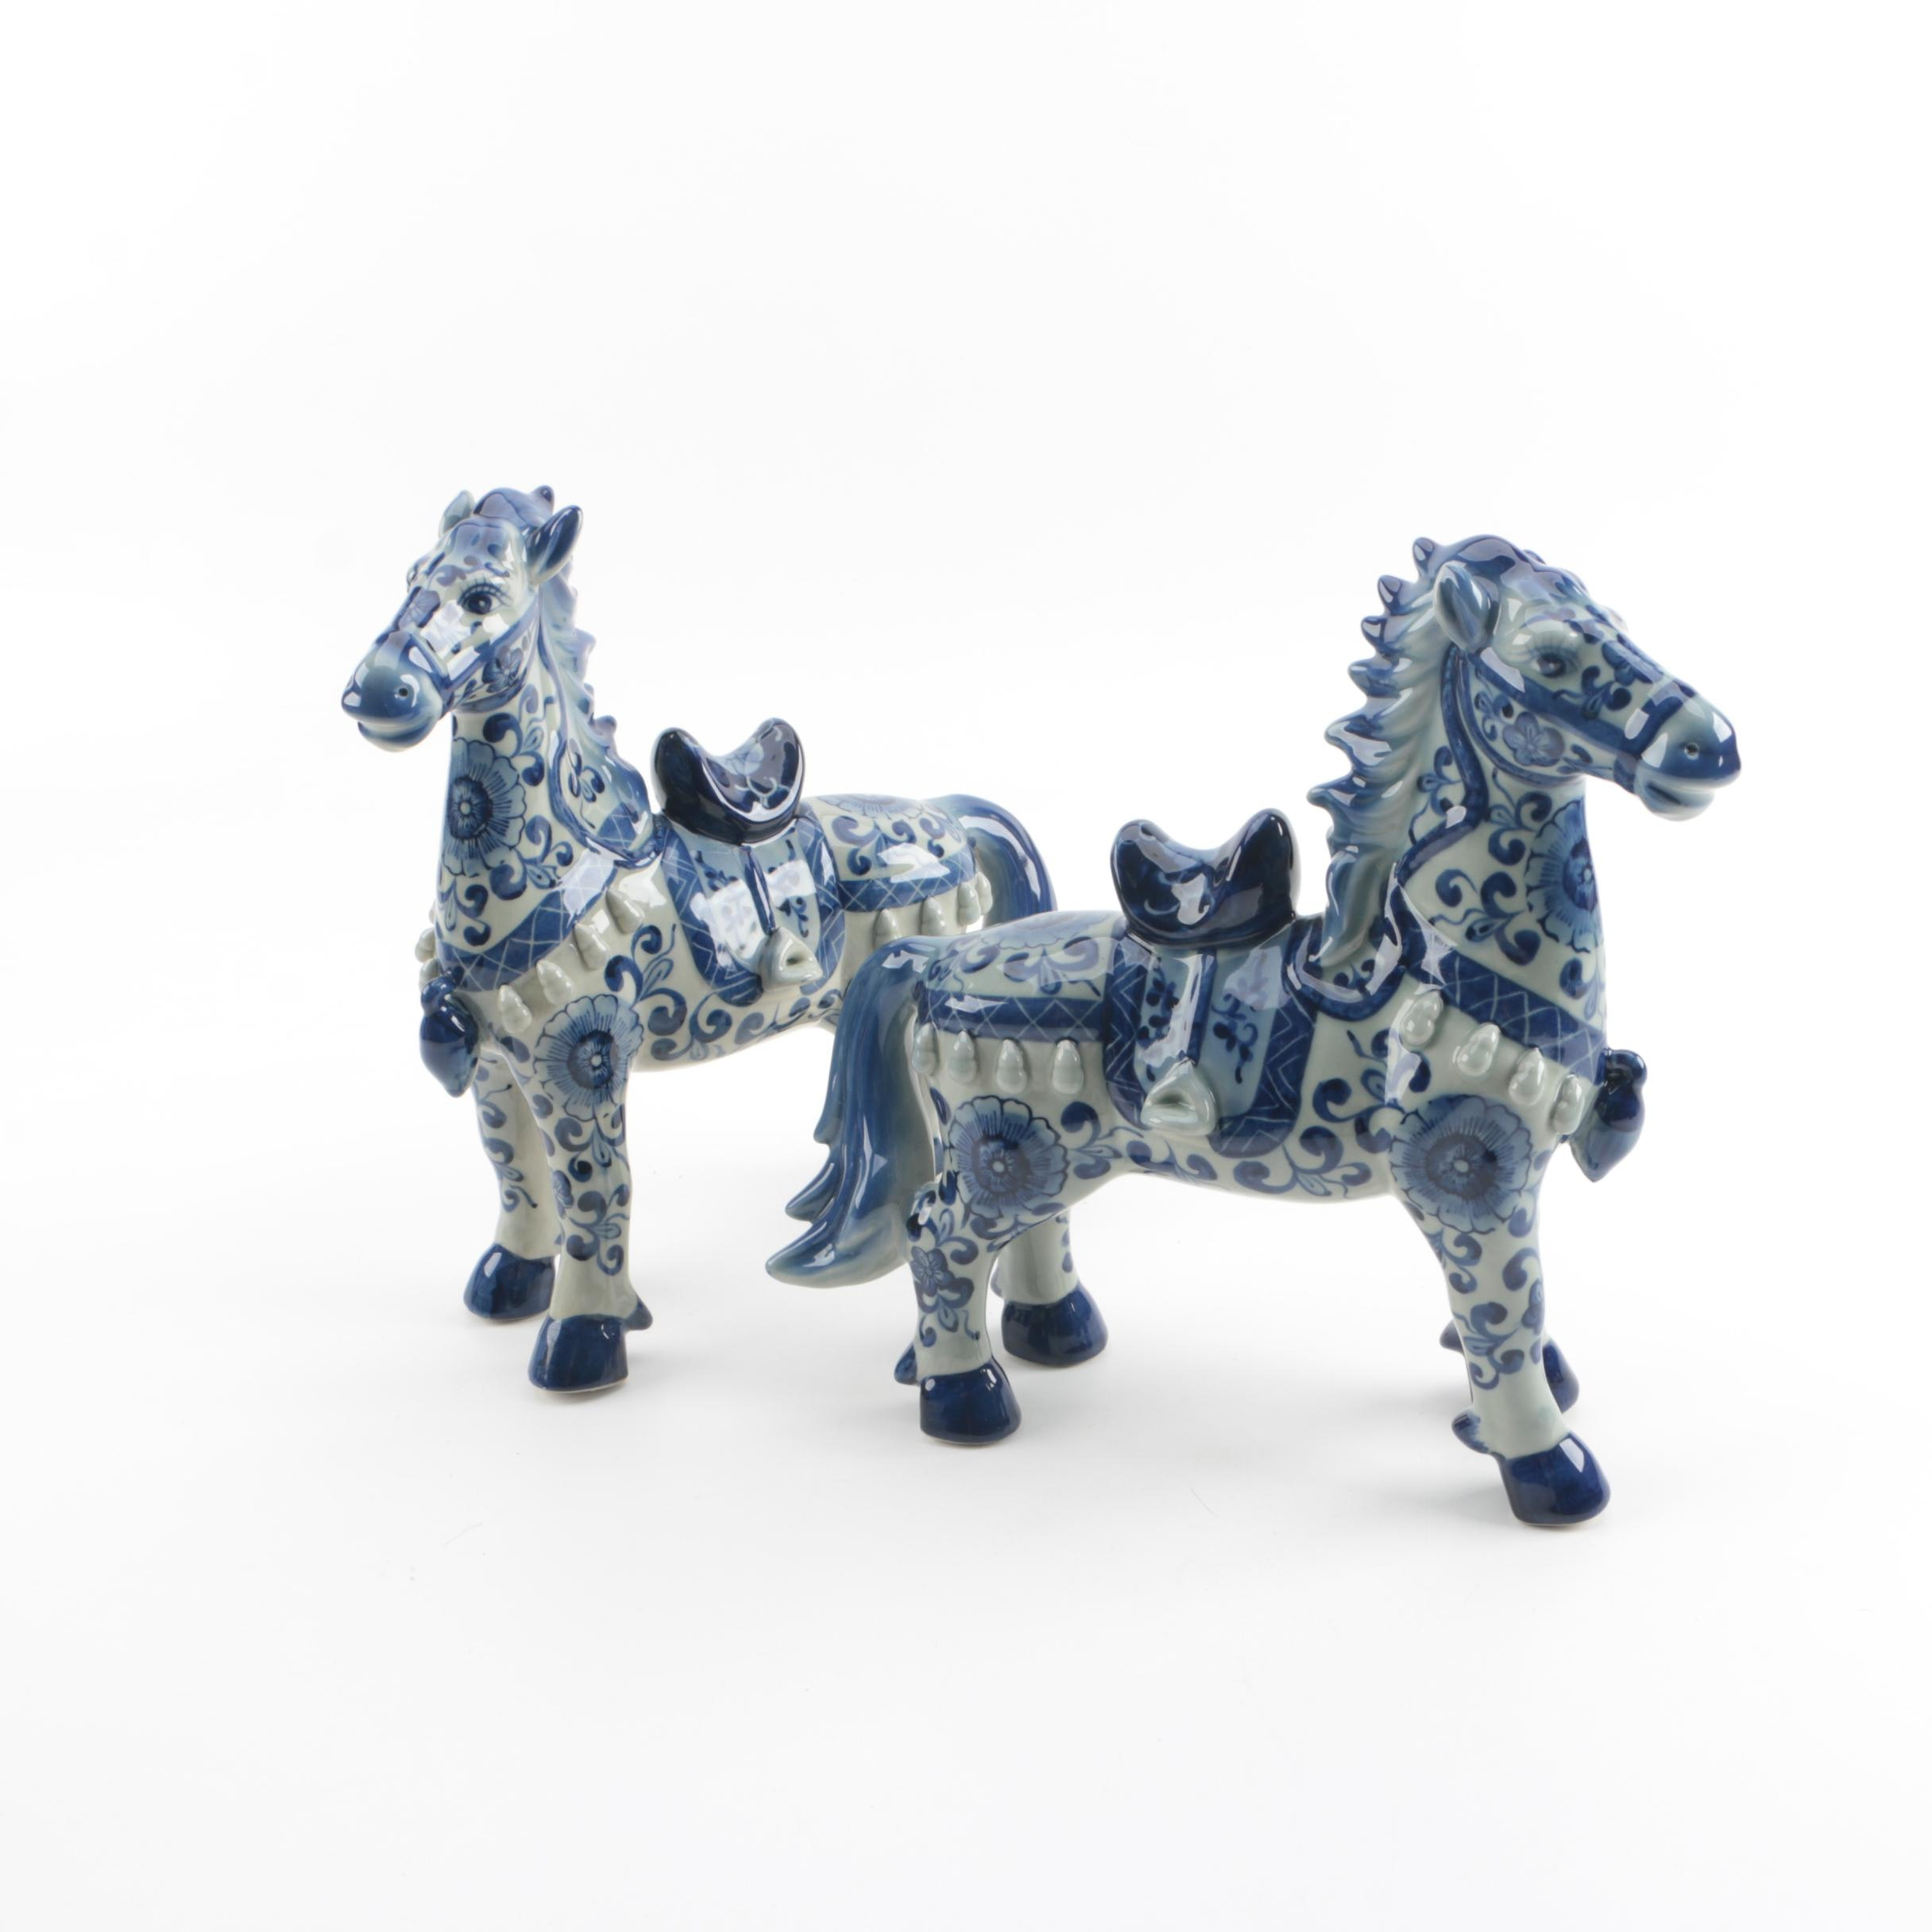 Chinese Hand-Painted Blue and White Porcelain Horse Figurines